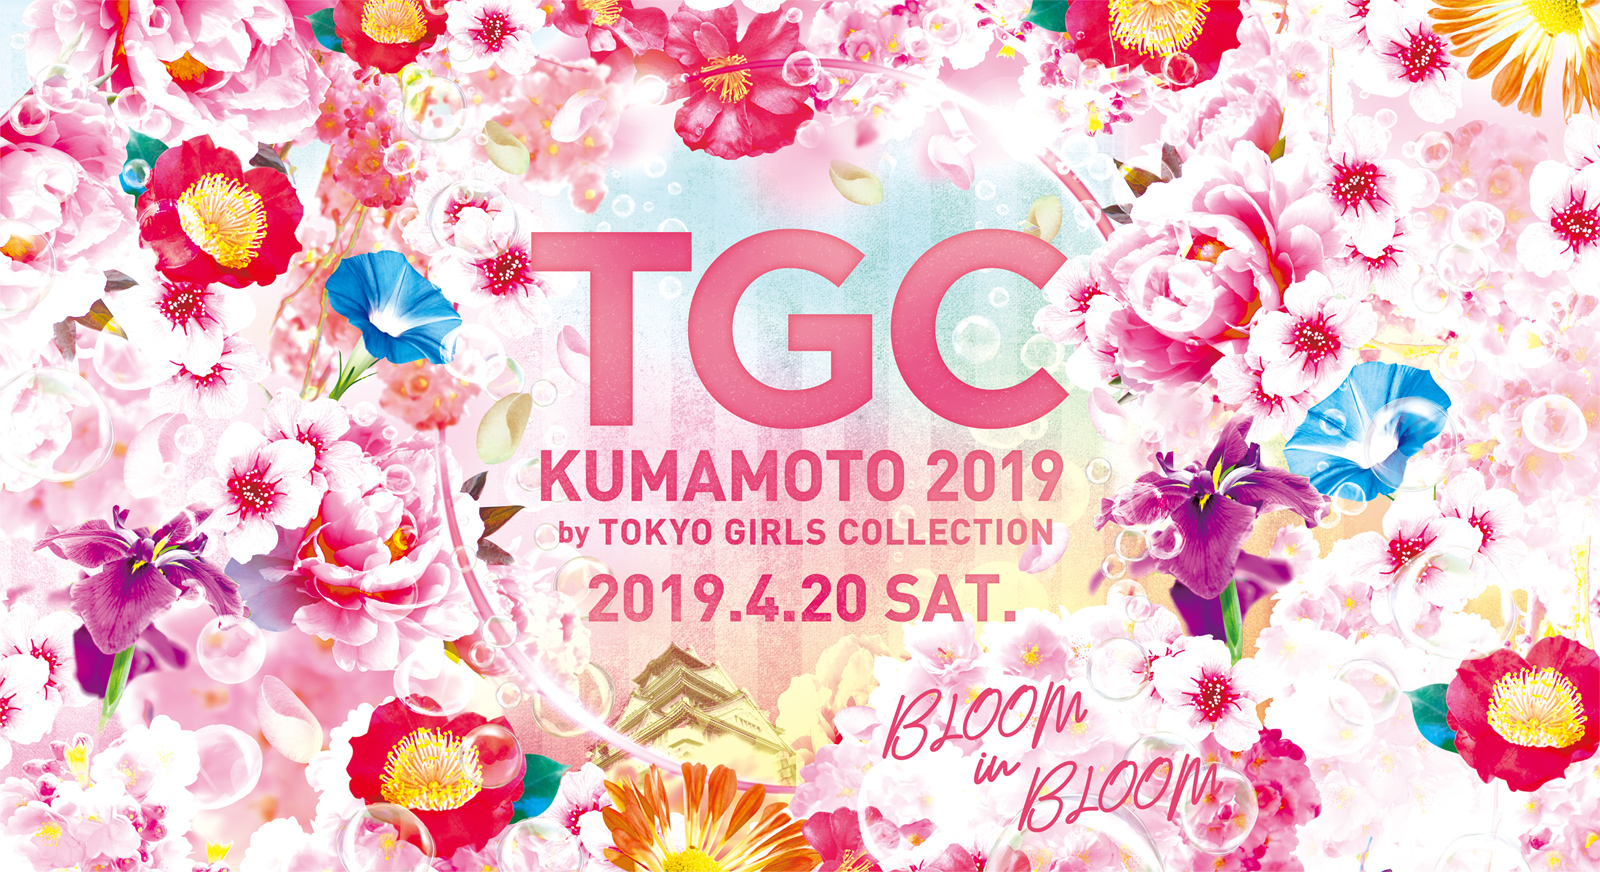 TGC KUMAMOTO 2019 by TOKYO GIRLS COLLECTION